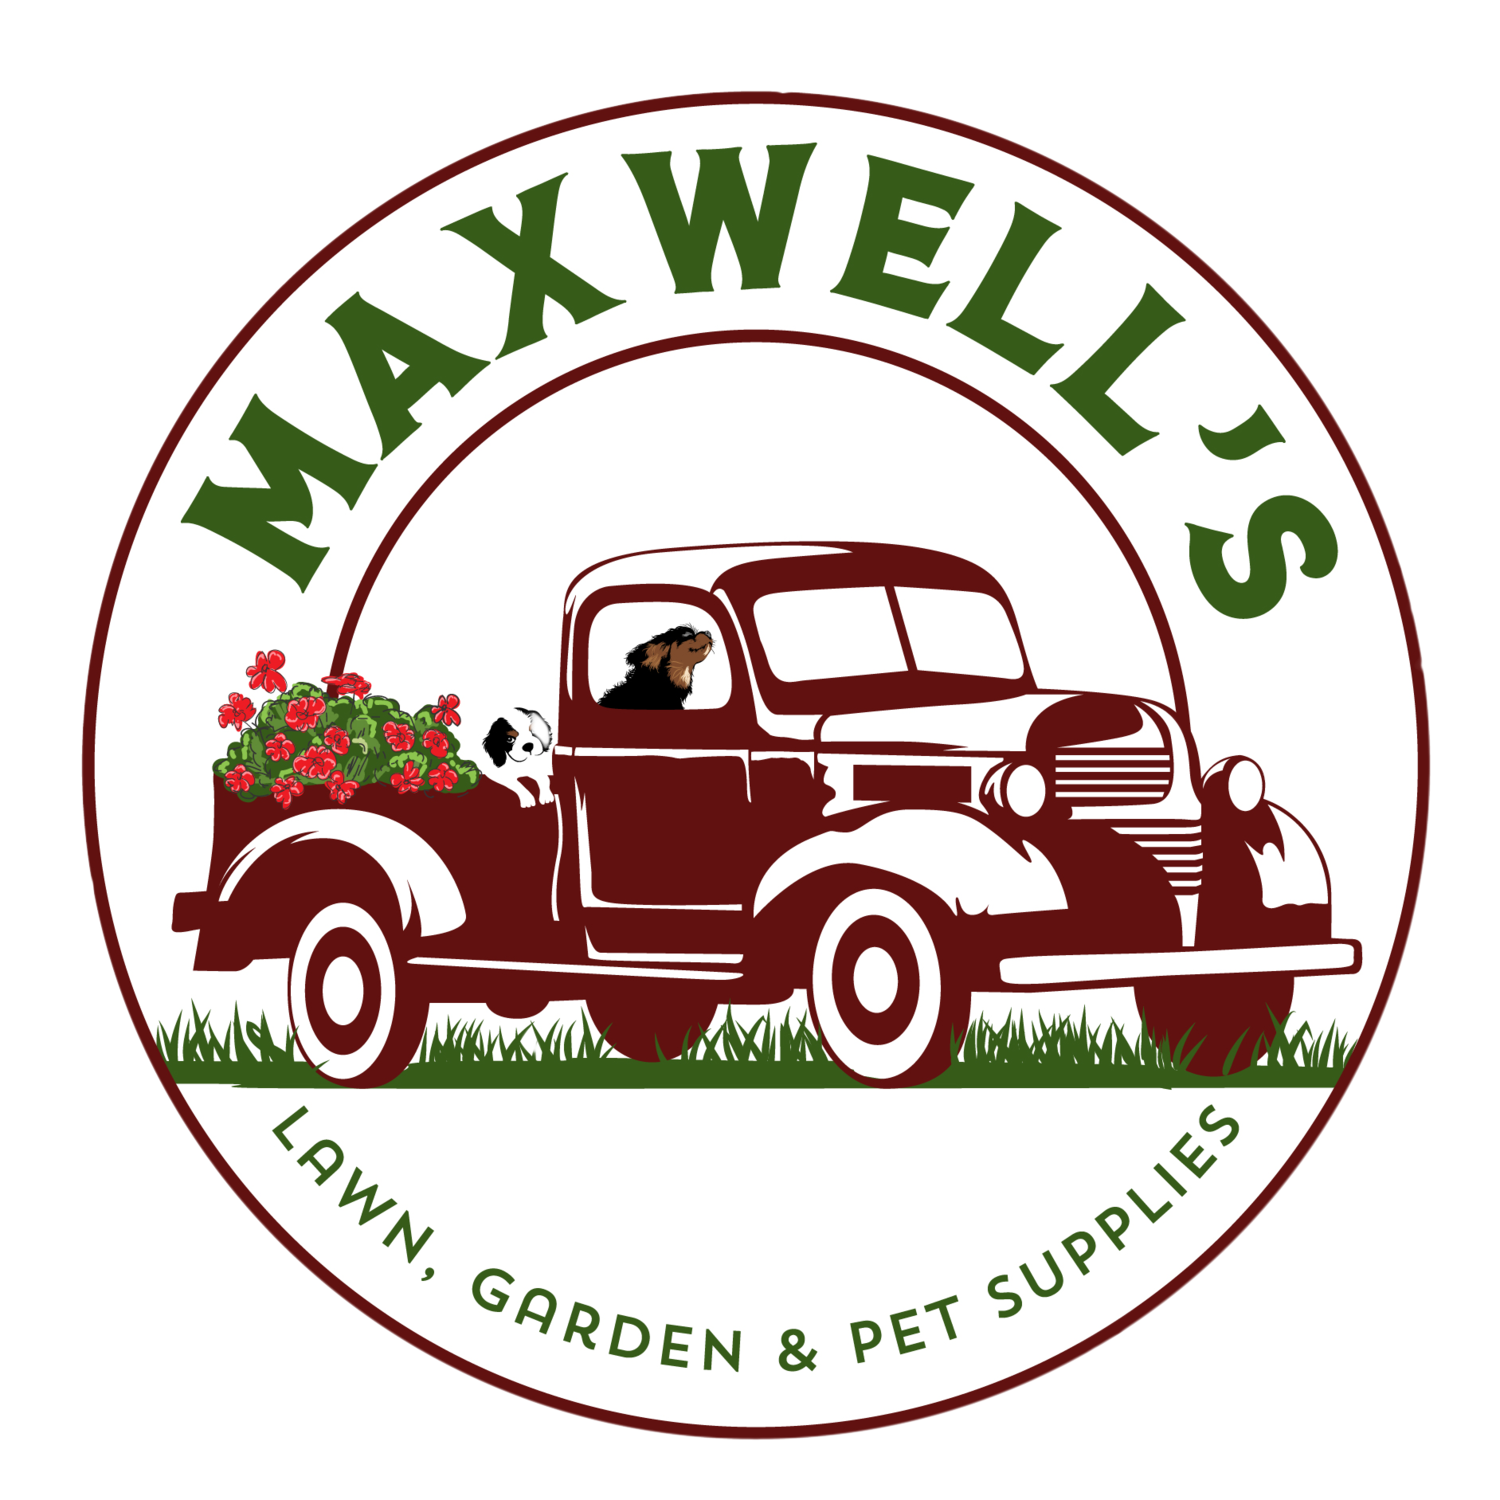 Maxwell's of chelmsford